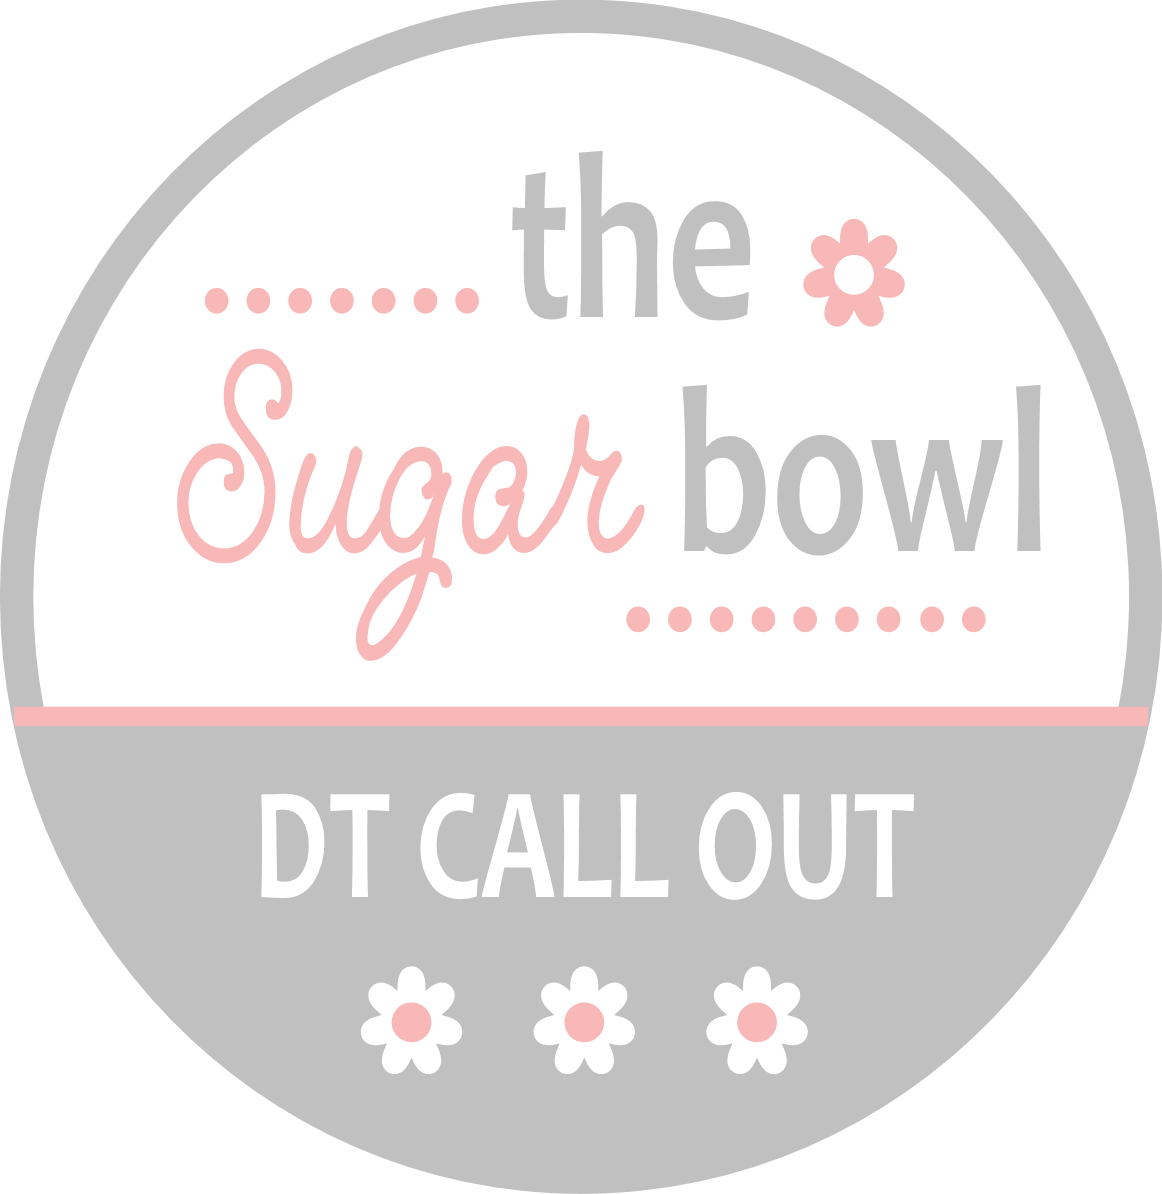 DT call at the Sugar bowl